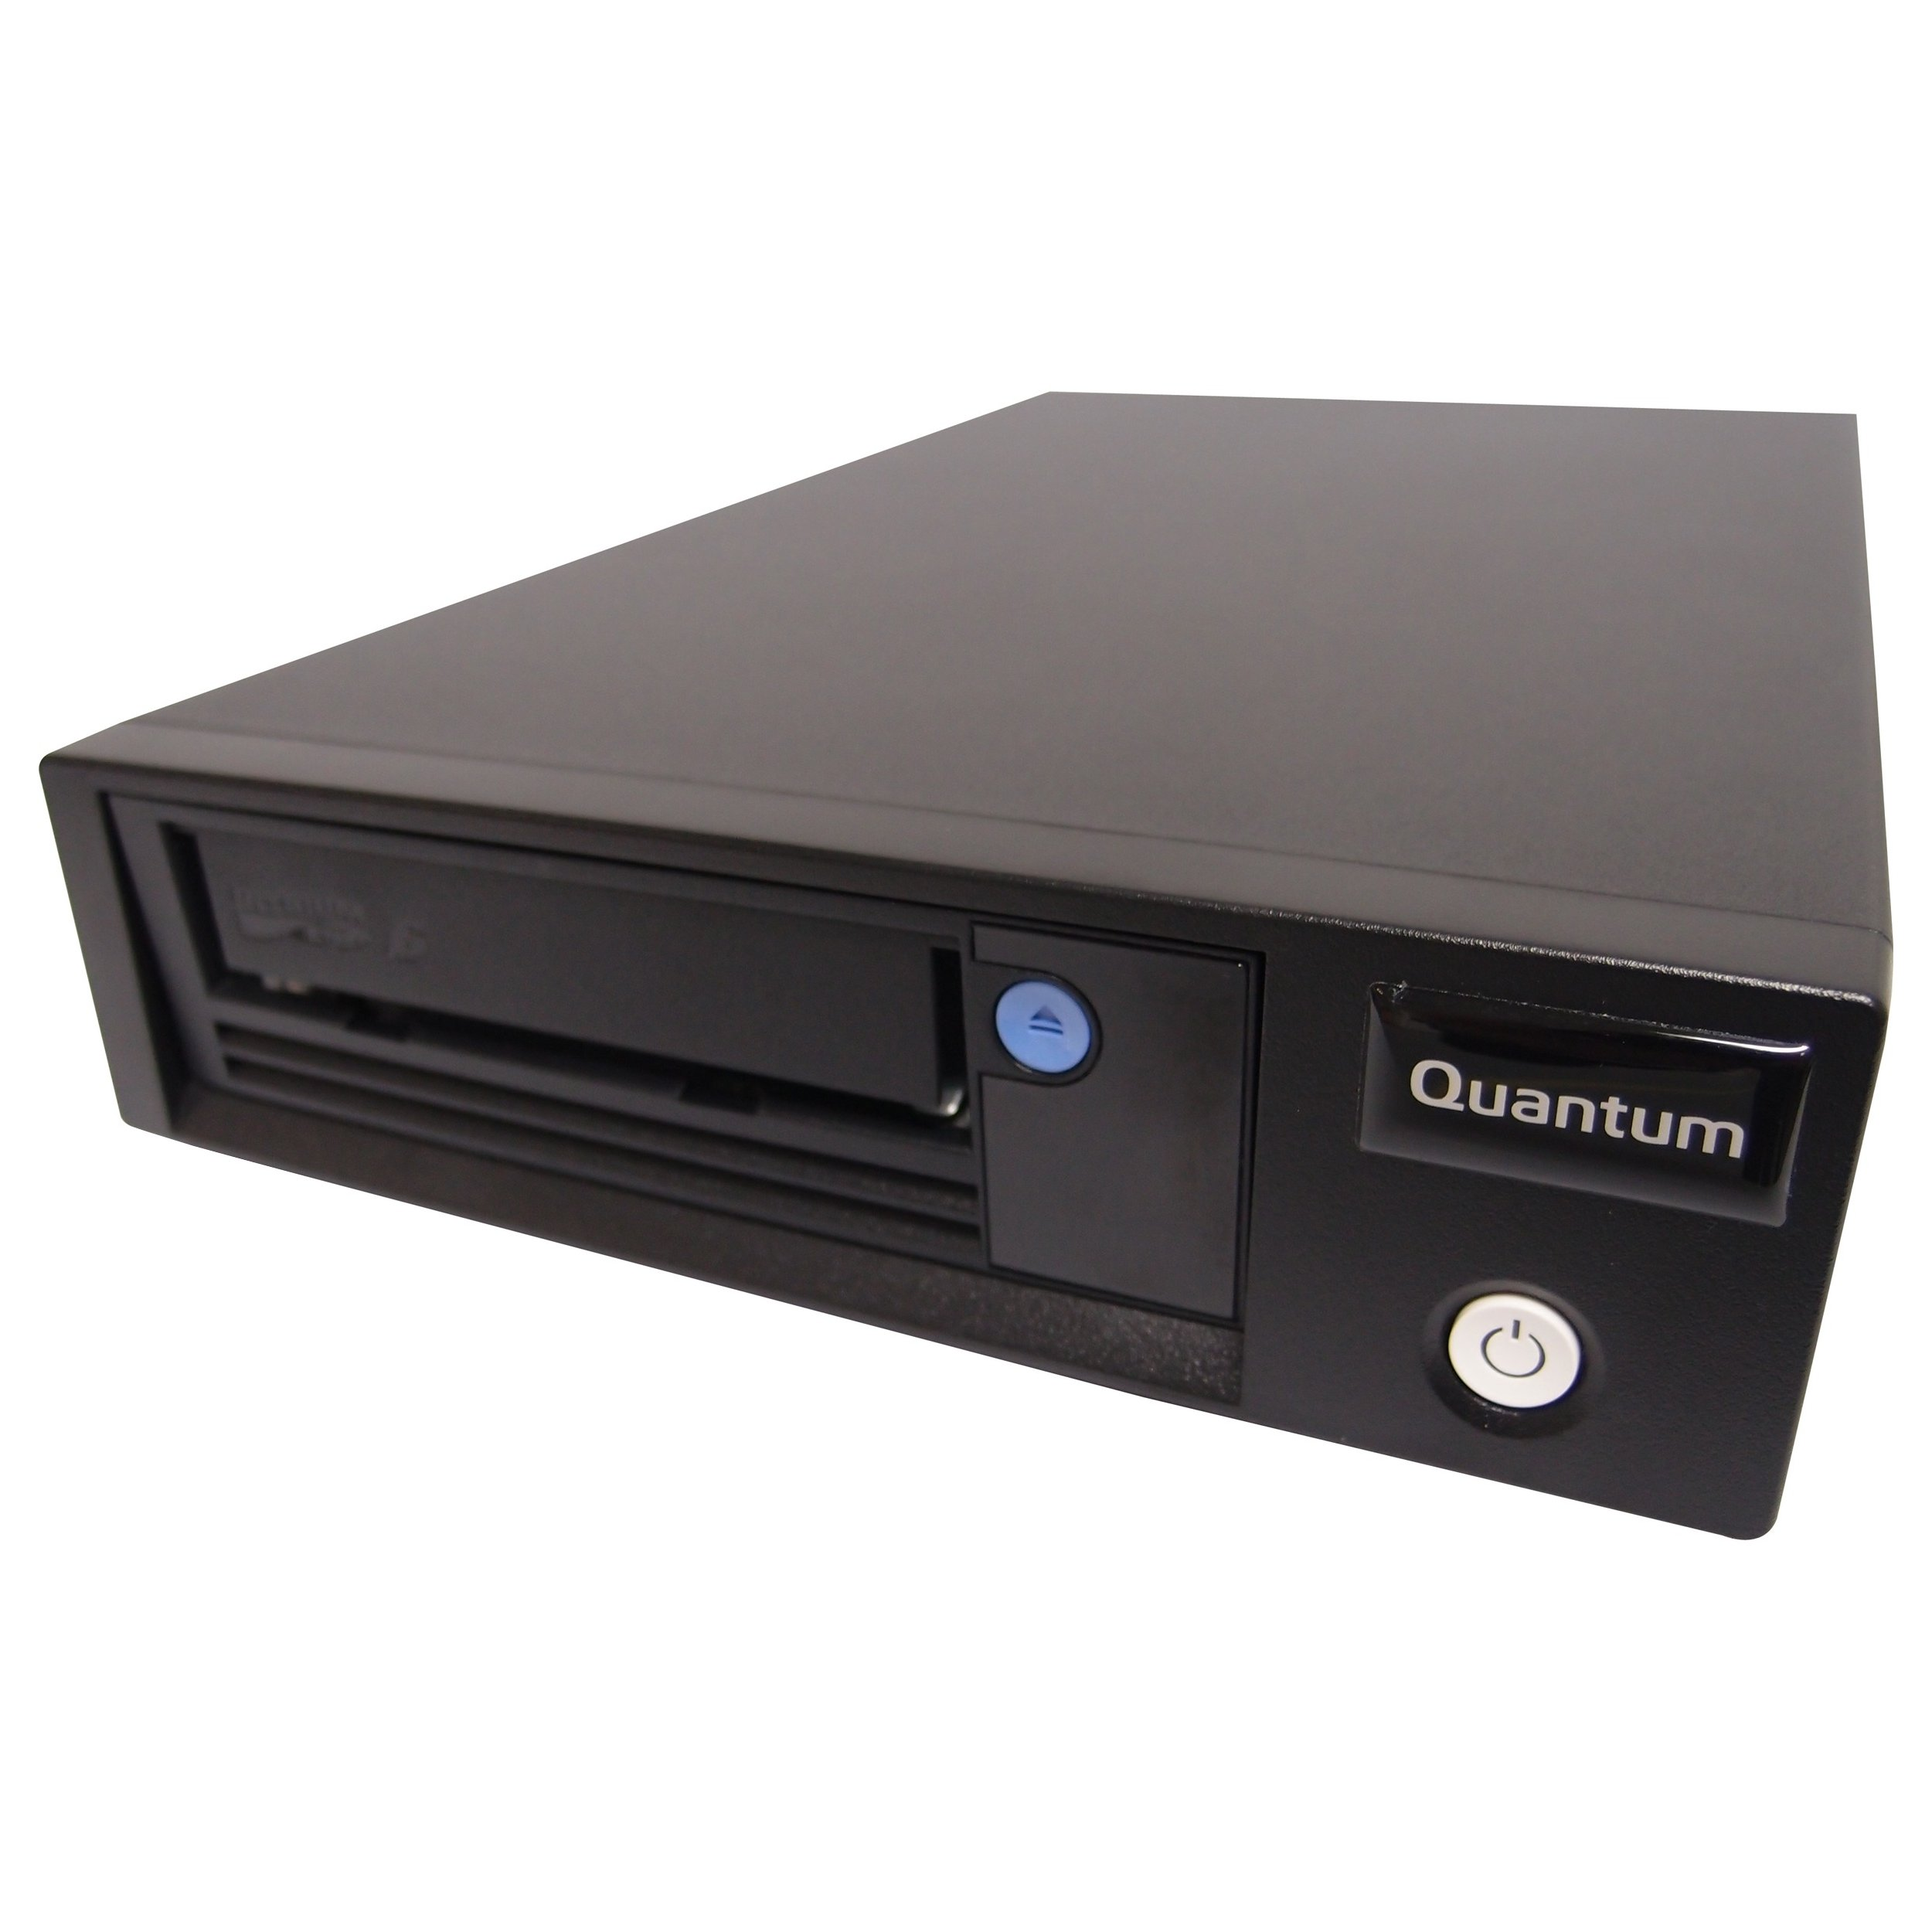 Quantum LTO Ultrium-6 Tape Drive, Half Height, Internal, Model C, 6Gb/s SAS, 5.25'', Black, Bare by Quantum